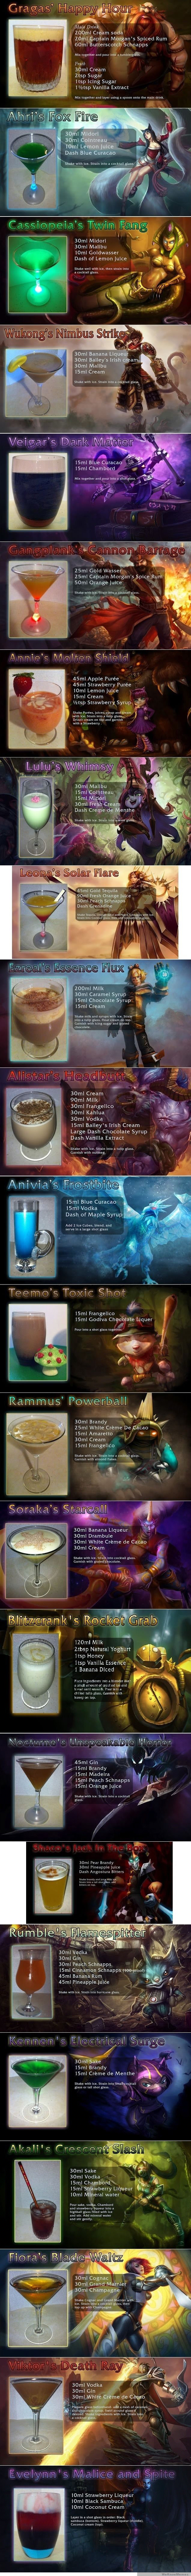 League of Legends Alchamahal Recipes. I did not make this, I take no credit for any of the drink recipes posted, I just want to share Some are non-alcoholic I d